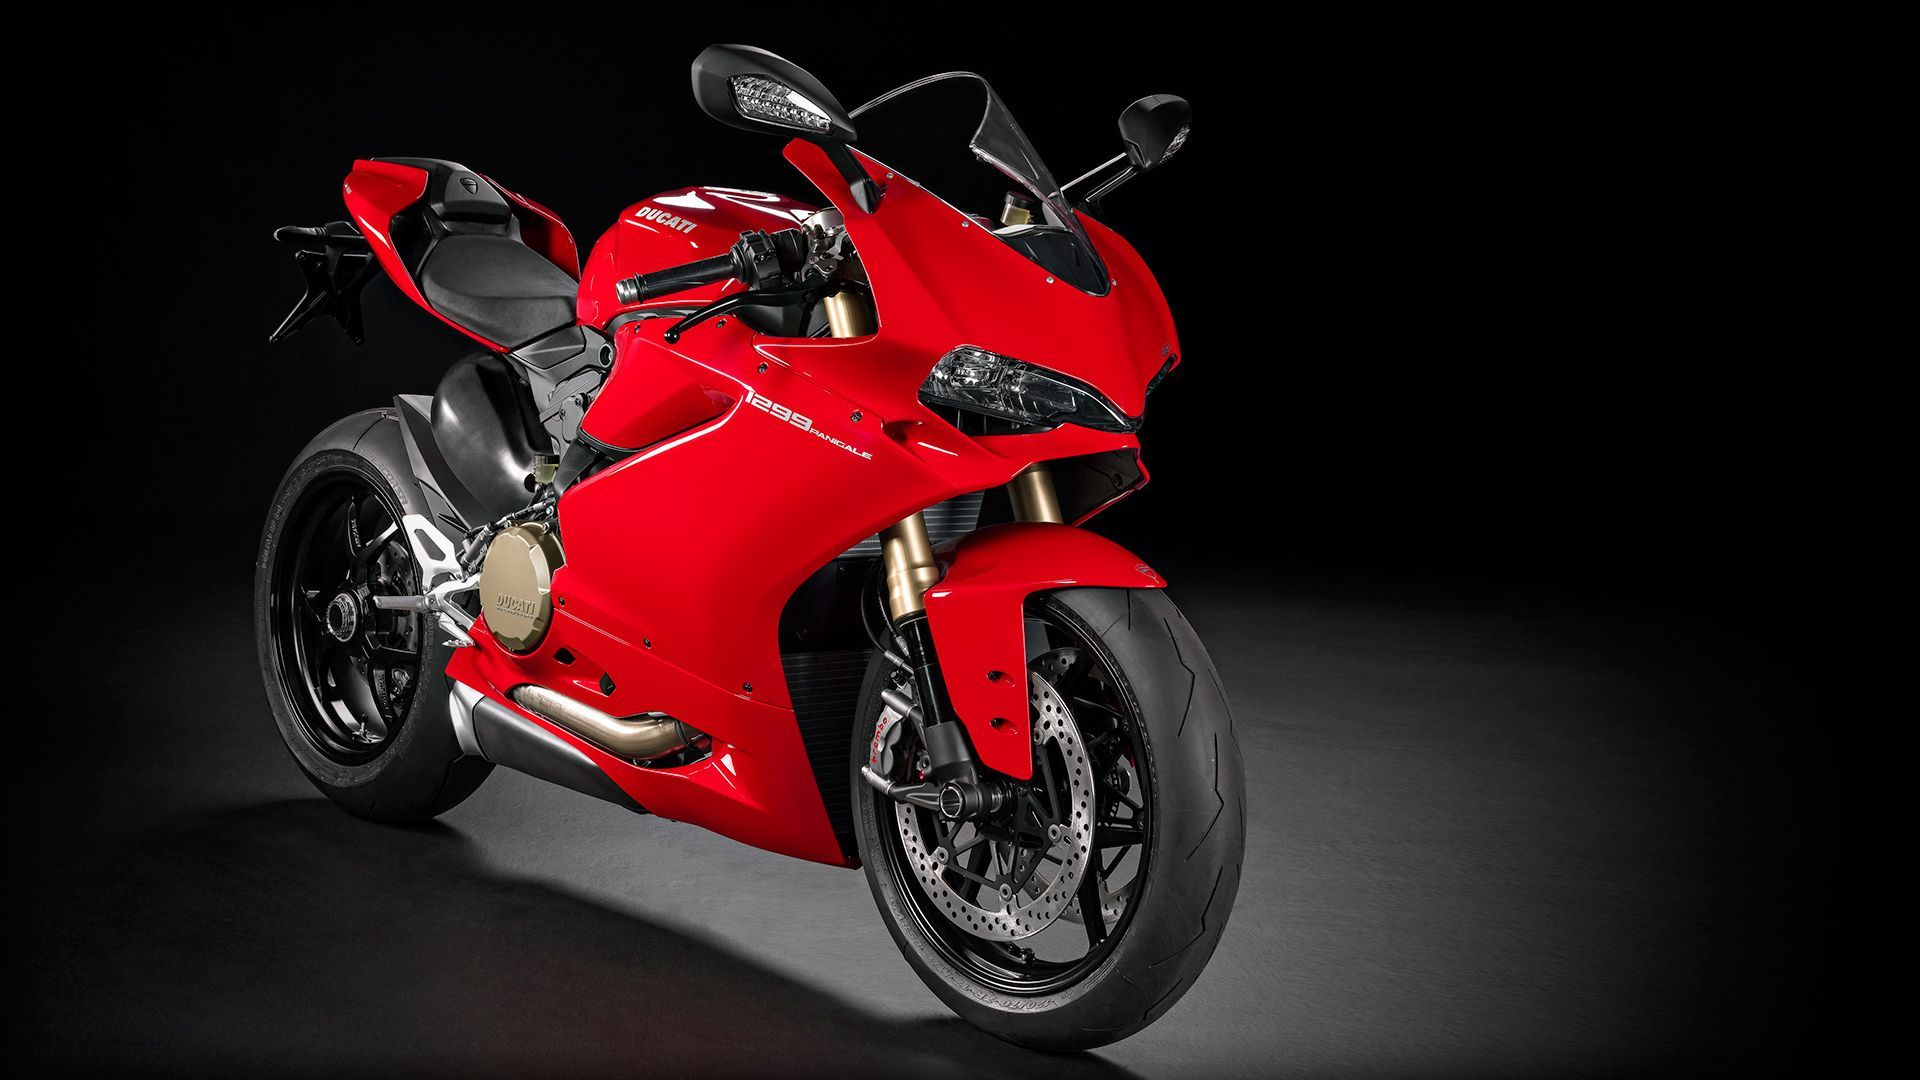 2015 Ducati 1299 Panigale | 1299 Panigale - Track Monster